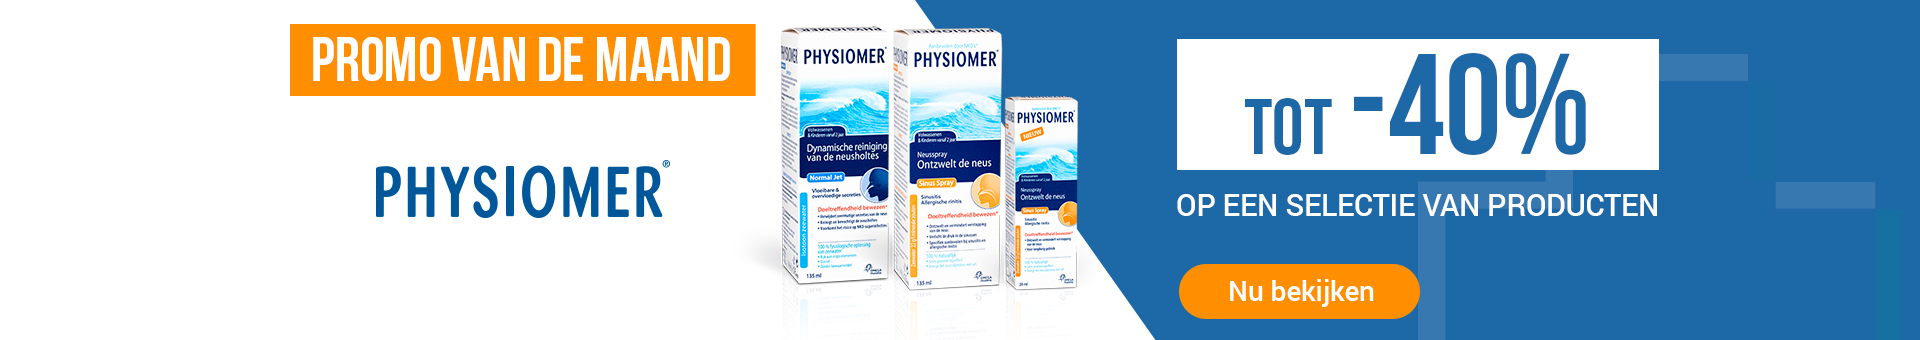 shop-pc-04-2020-physiomer-mobile-nl.jpg